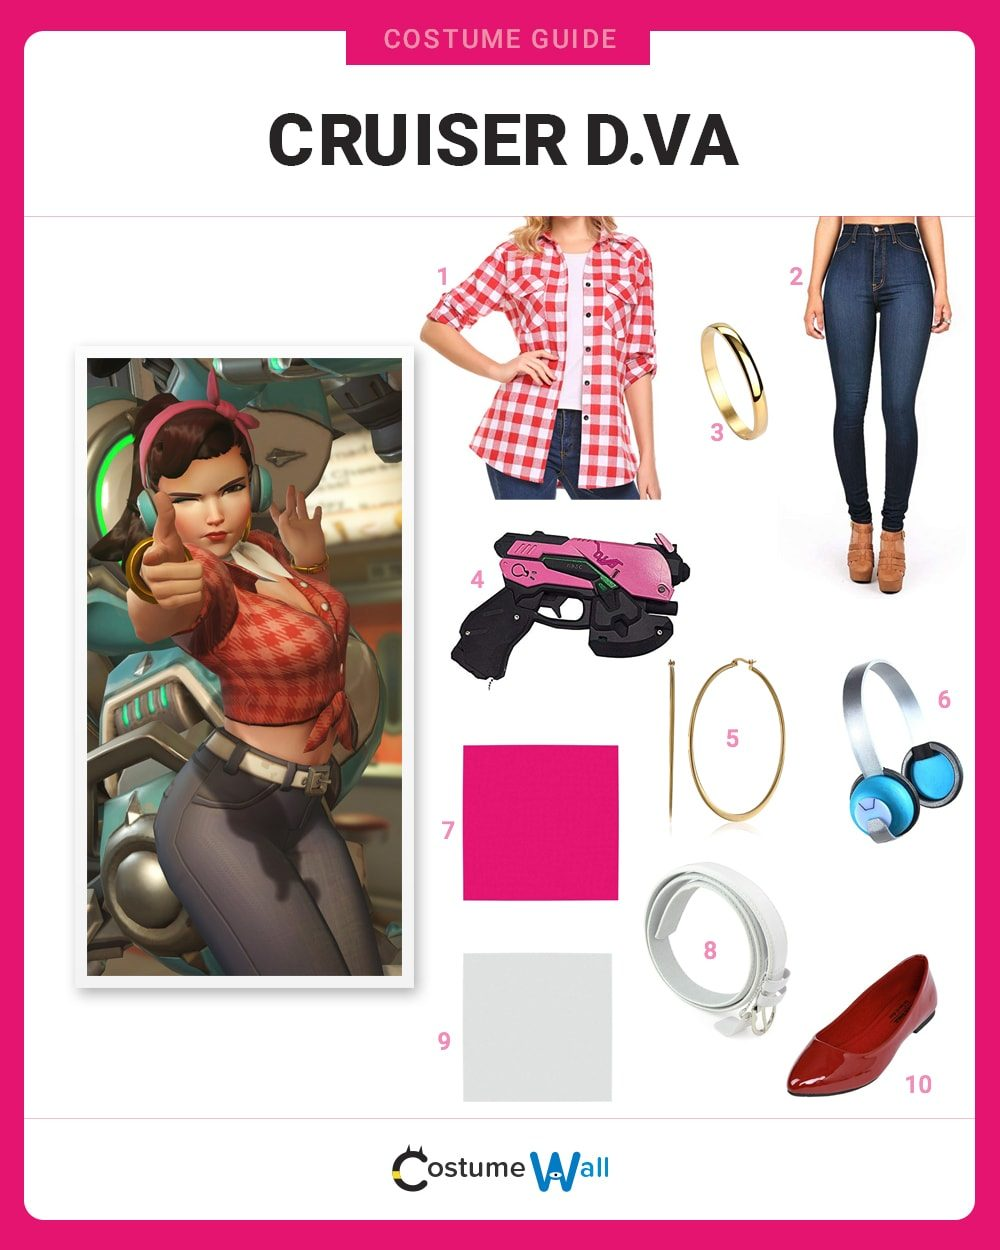 Cruiser D.Va Costume Guide